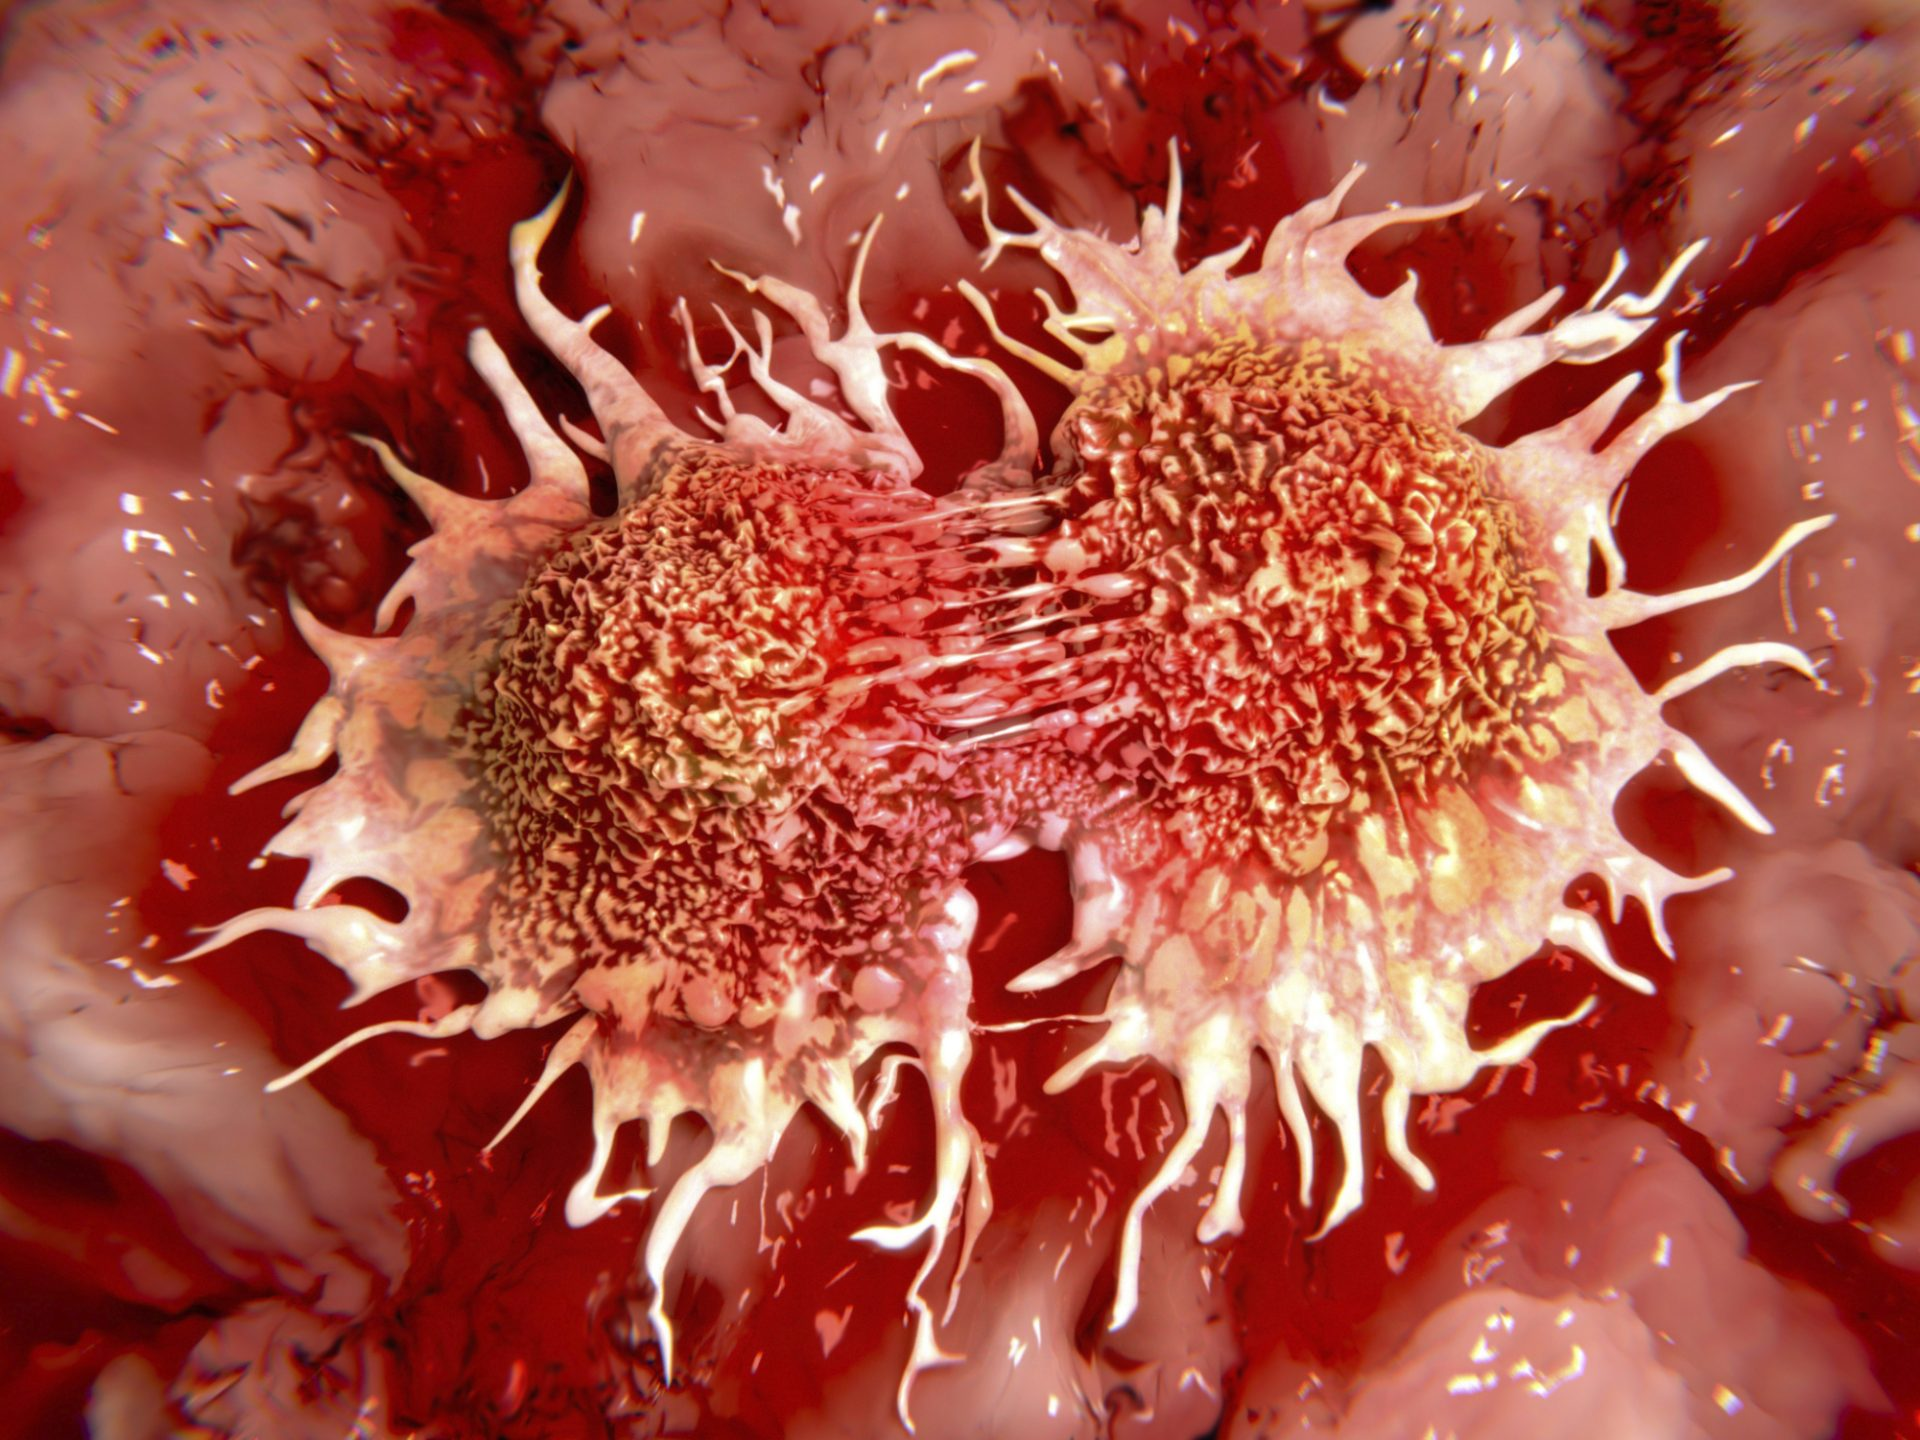 Tumor growth increases with high sugar intake ... - photo#4